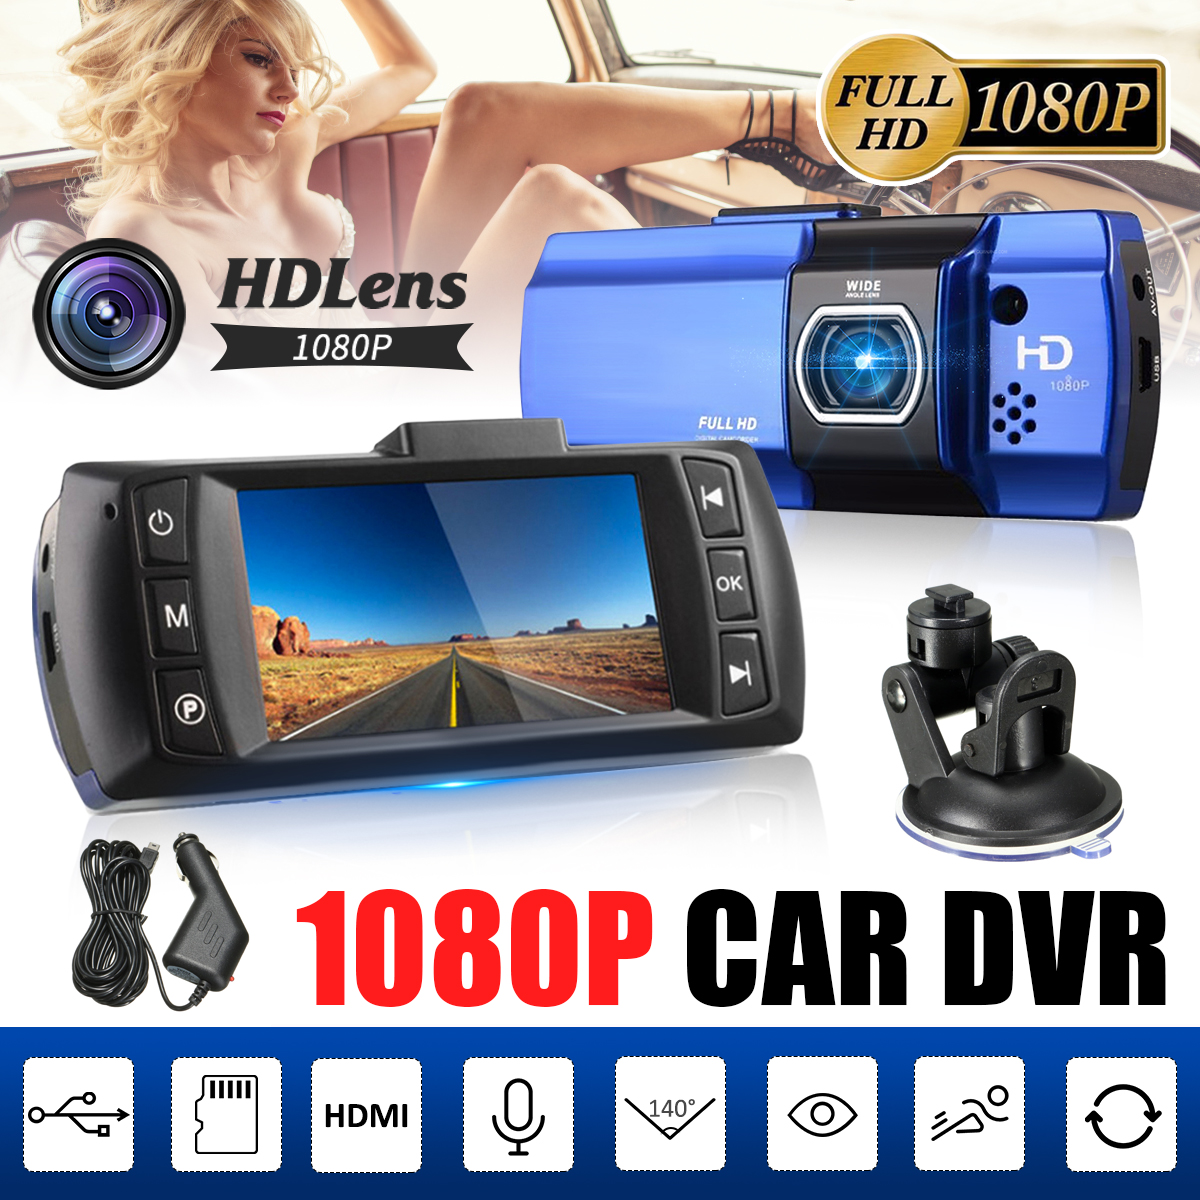 2.7 Inch LCD HD Full 1080P Car DVR Dash Camera Video Recorder G-sensor Night Vision